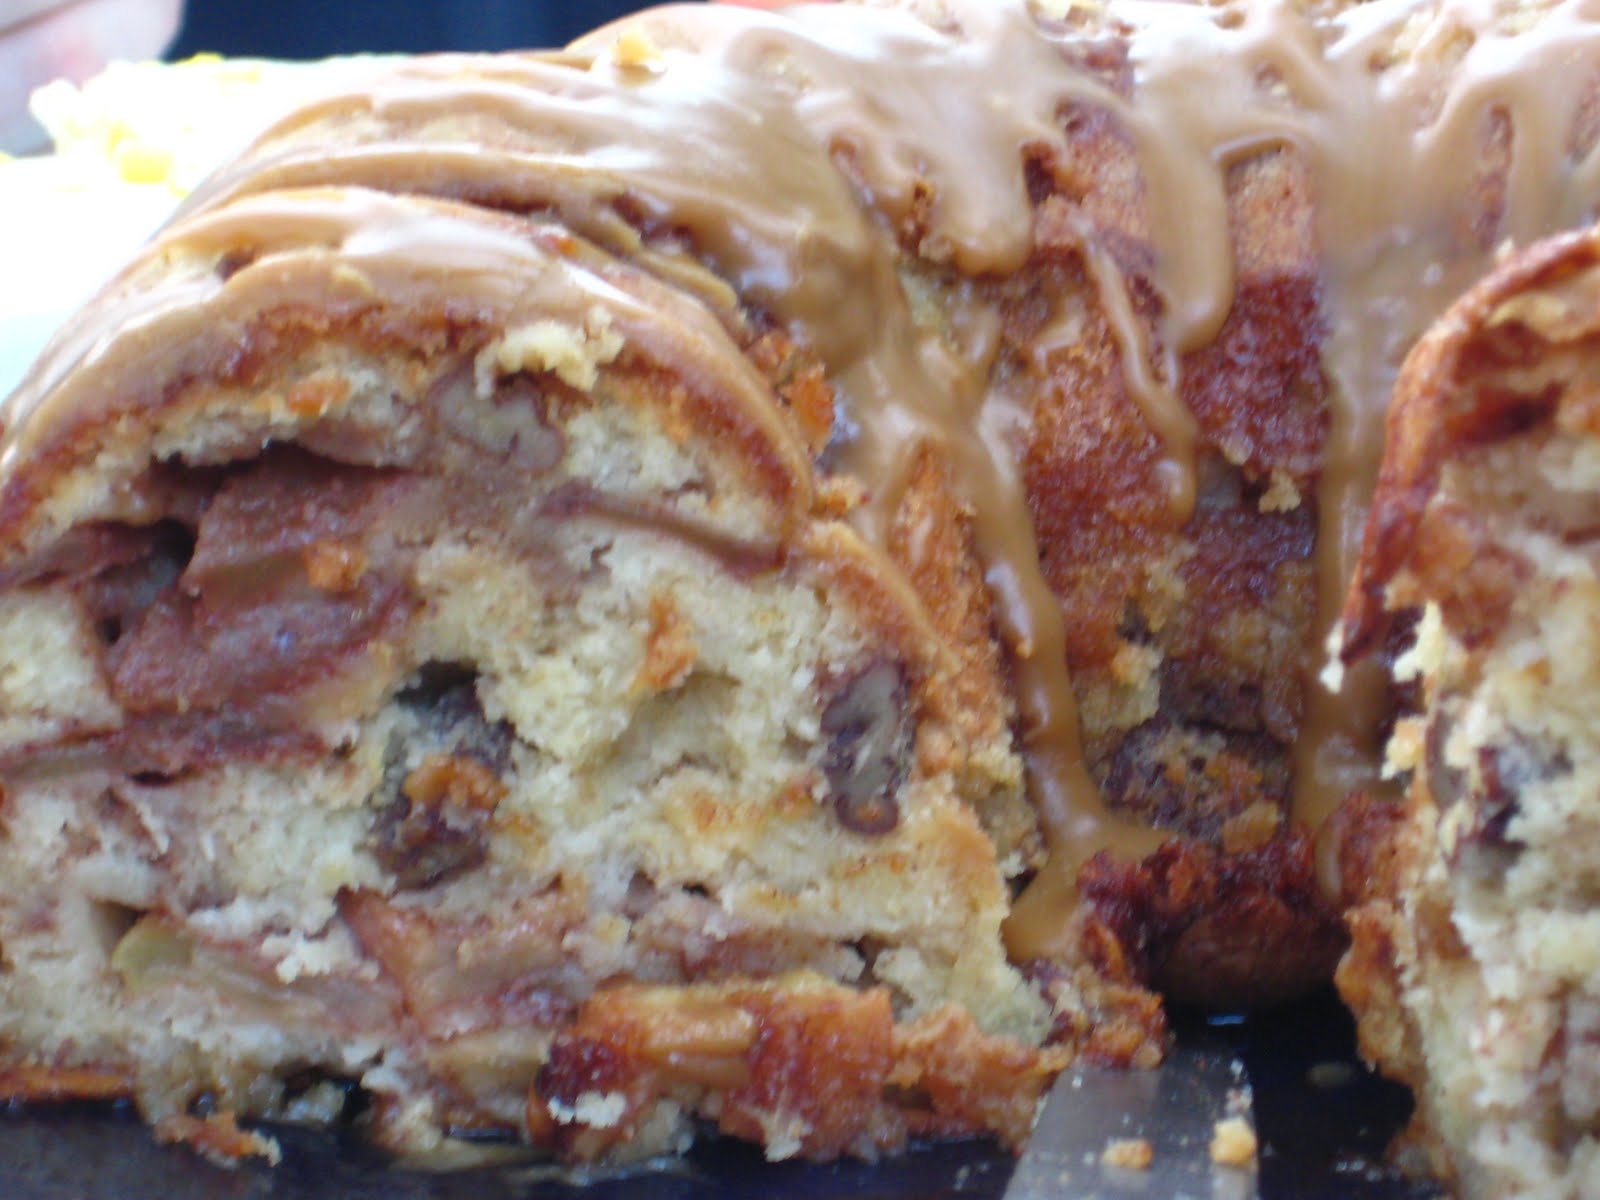 ... Kate of Marsh Mellow Goodness: Cinnamon Apple Cake with Caramel Glaze